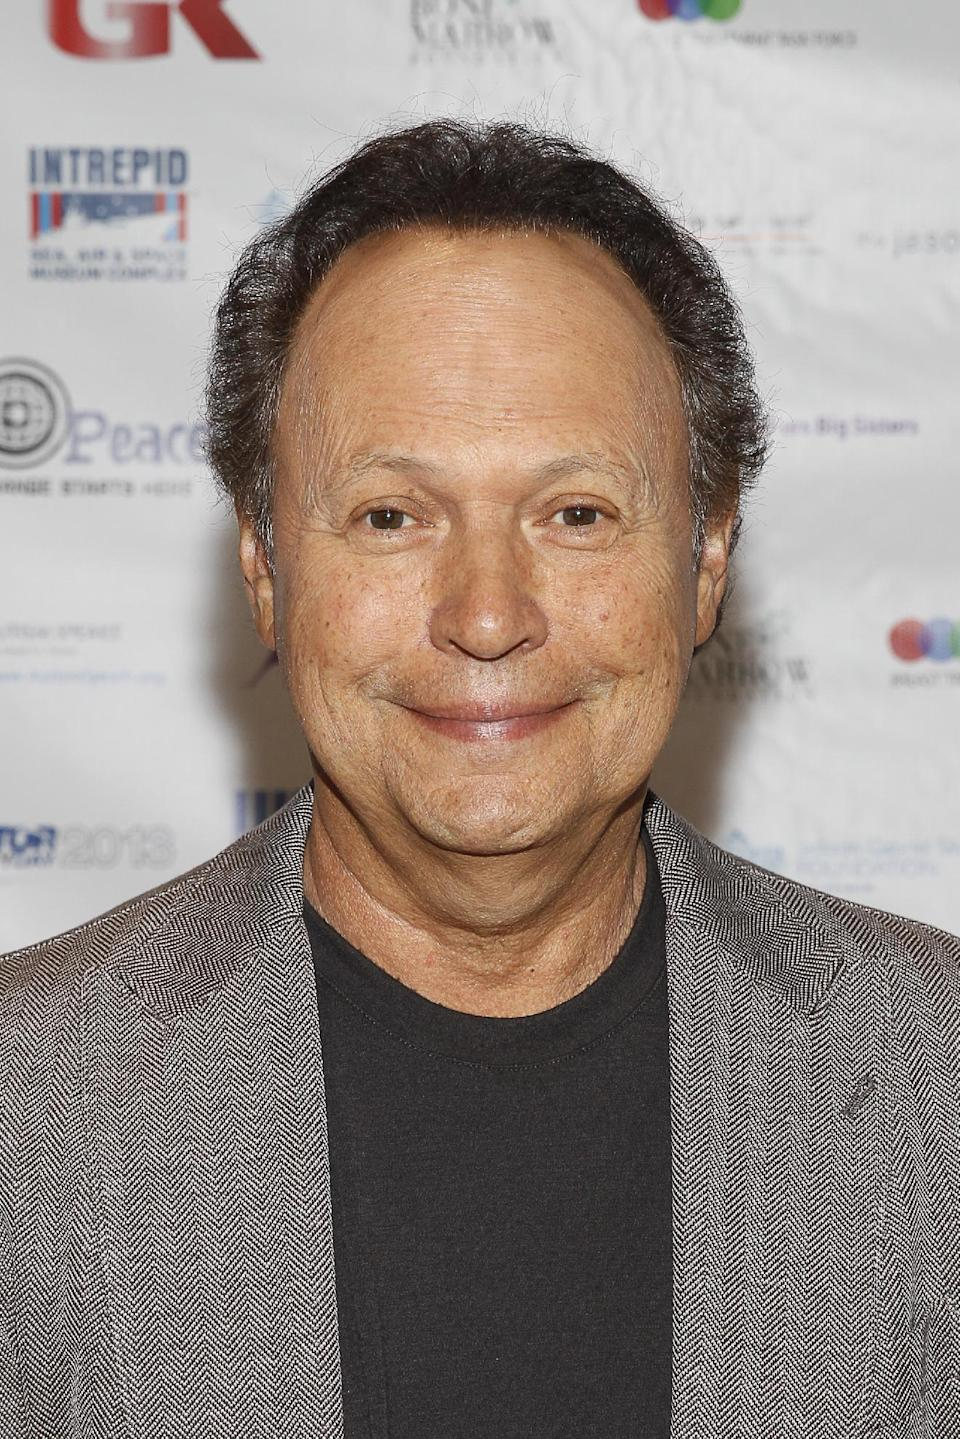 Billy Crystal arrives at the Annual Charity Day hosted by Cantor Fitzgerald and BGC Partners, on Wednesday, Sept. 11, 2013, in New York. (Photo by Mark Von Holden/Invision/AP)